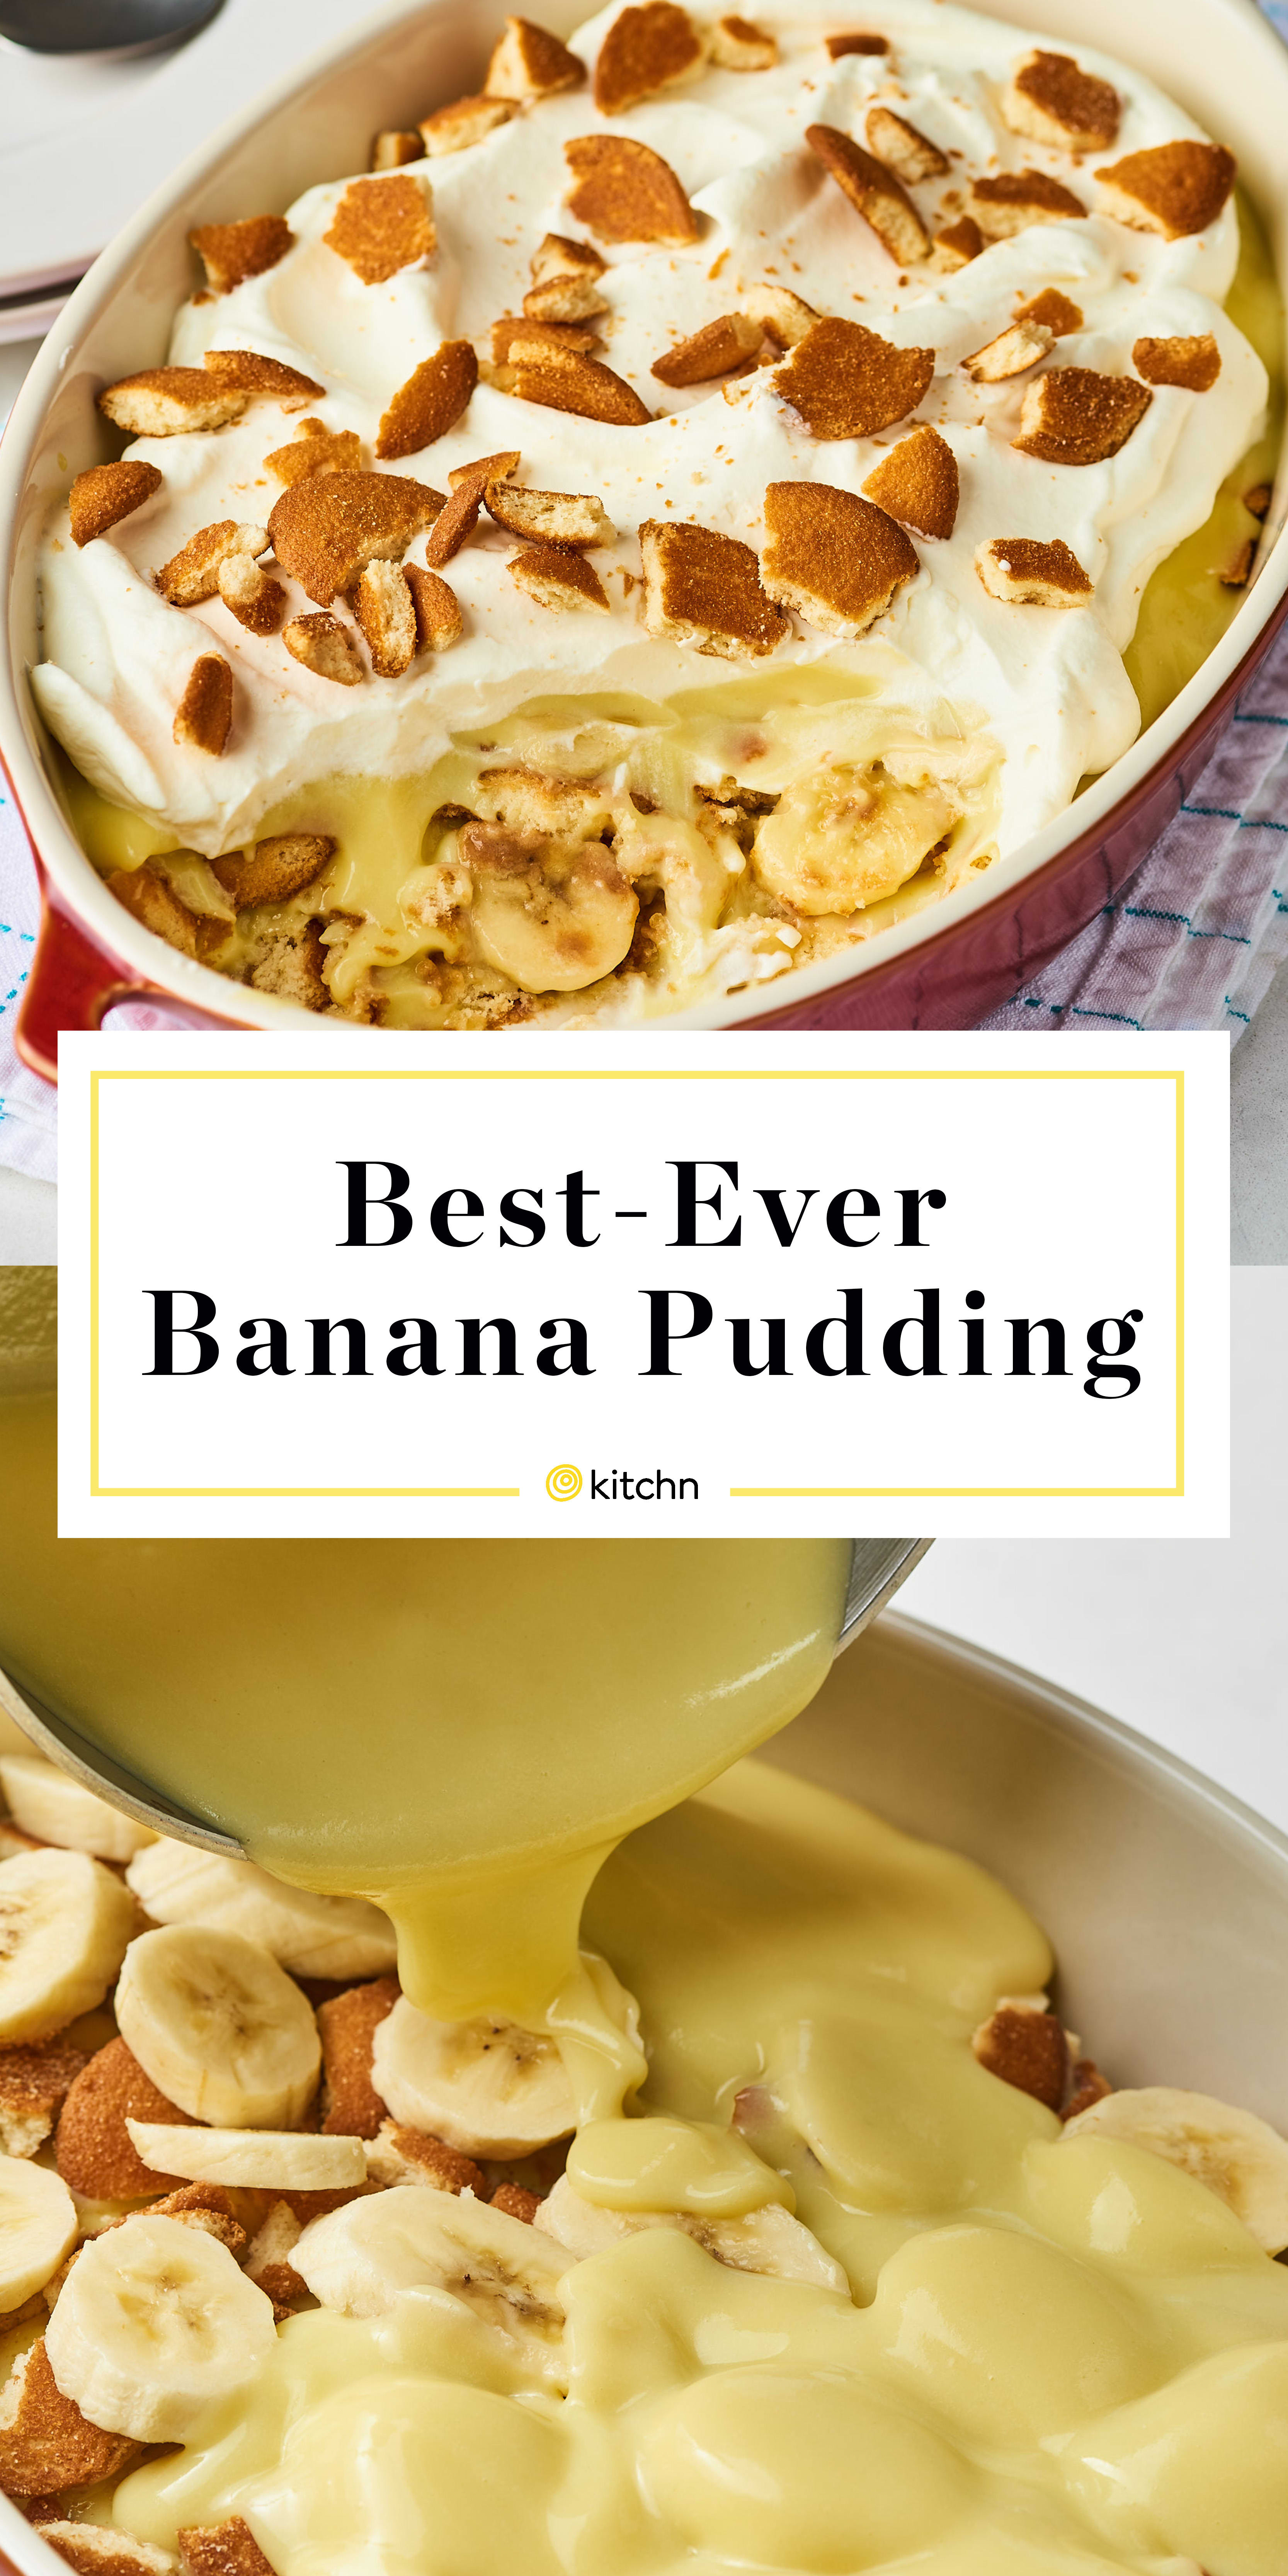 The Best Easy Banana Pudding | Kitchn